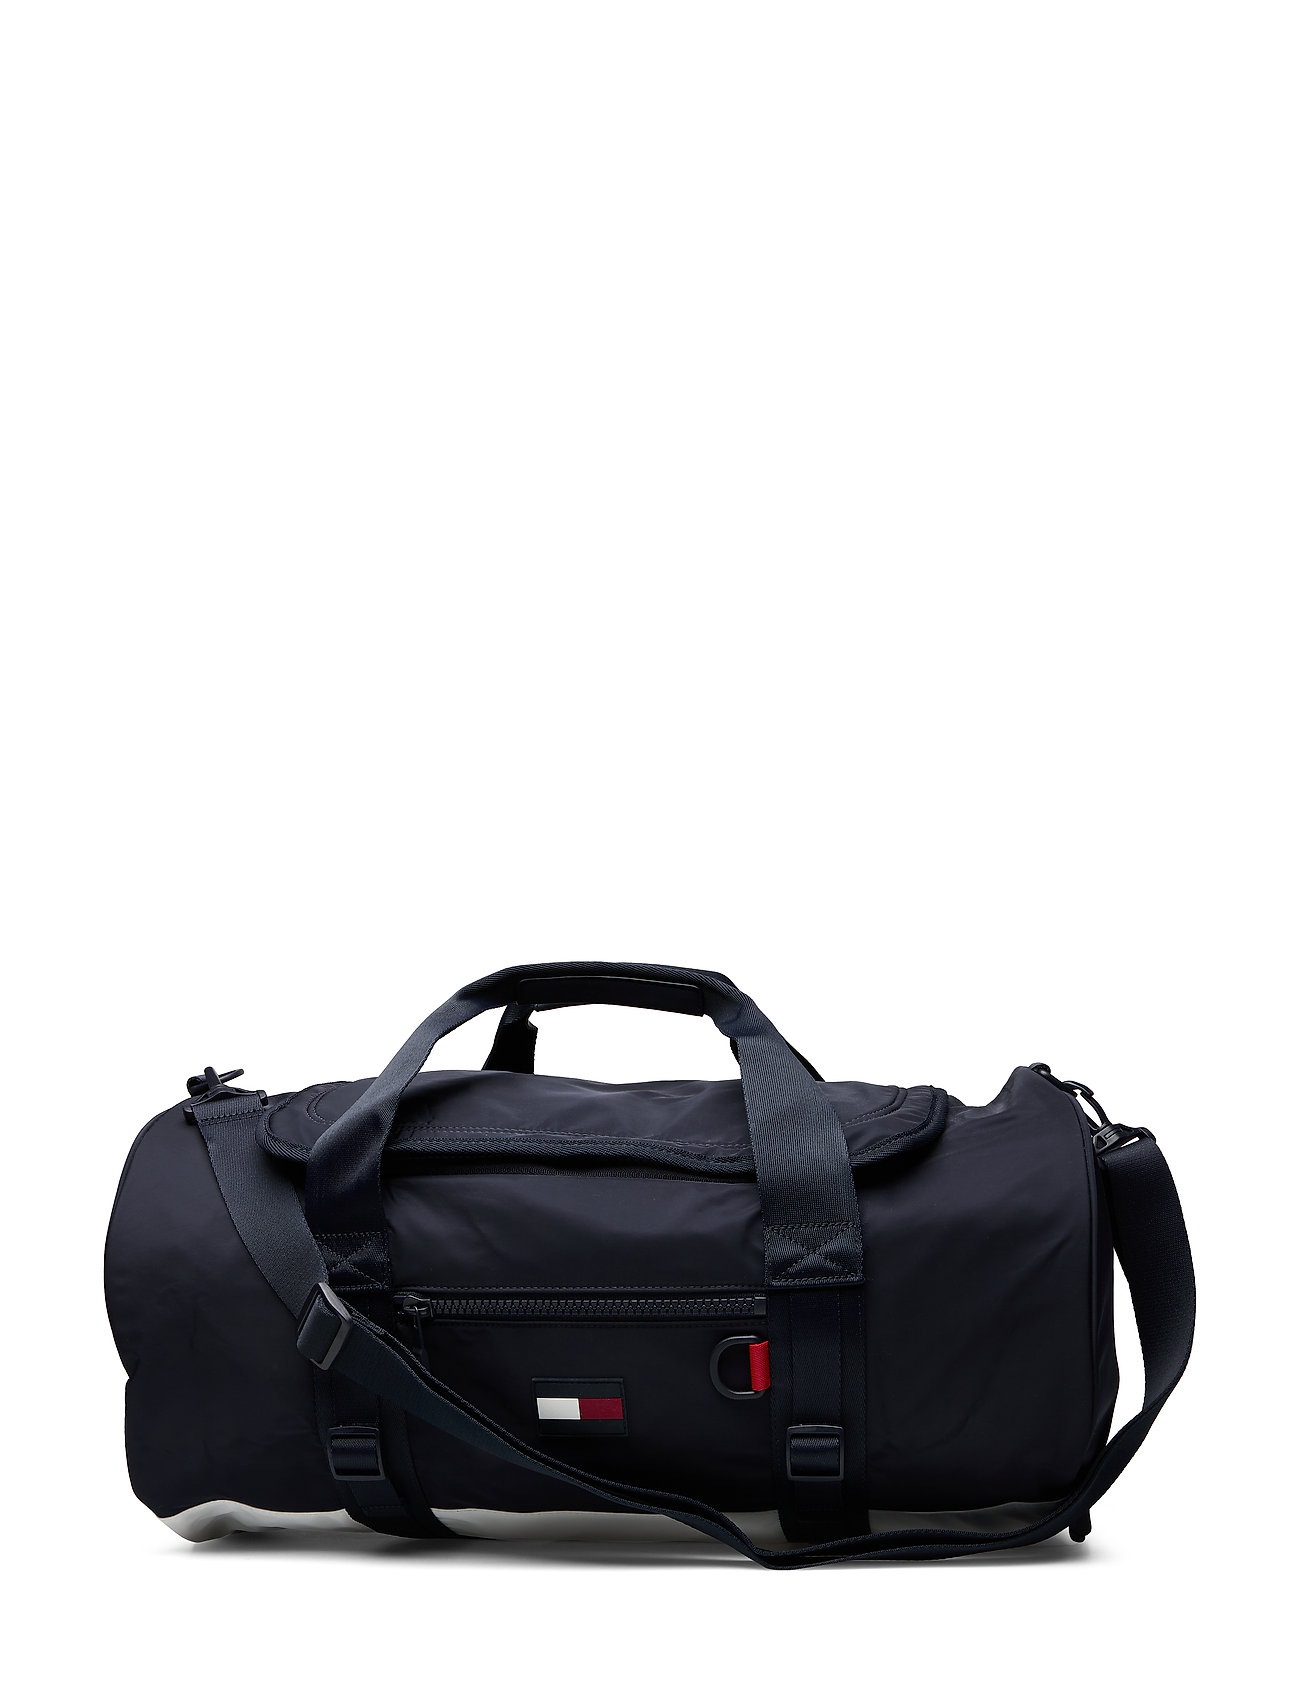 Tommy Hilfiger TOMMY DUFFLE - SKY CAPTAIN